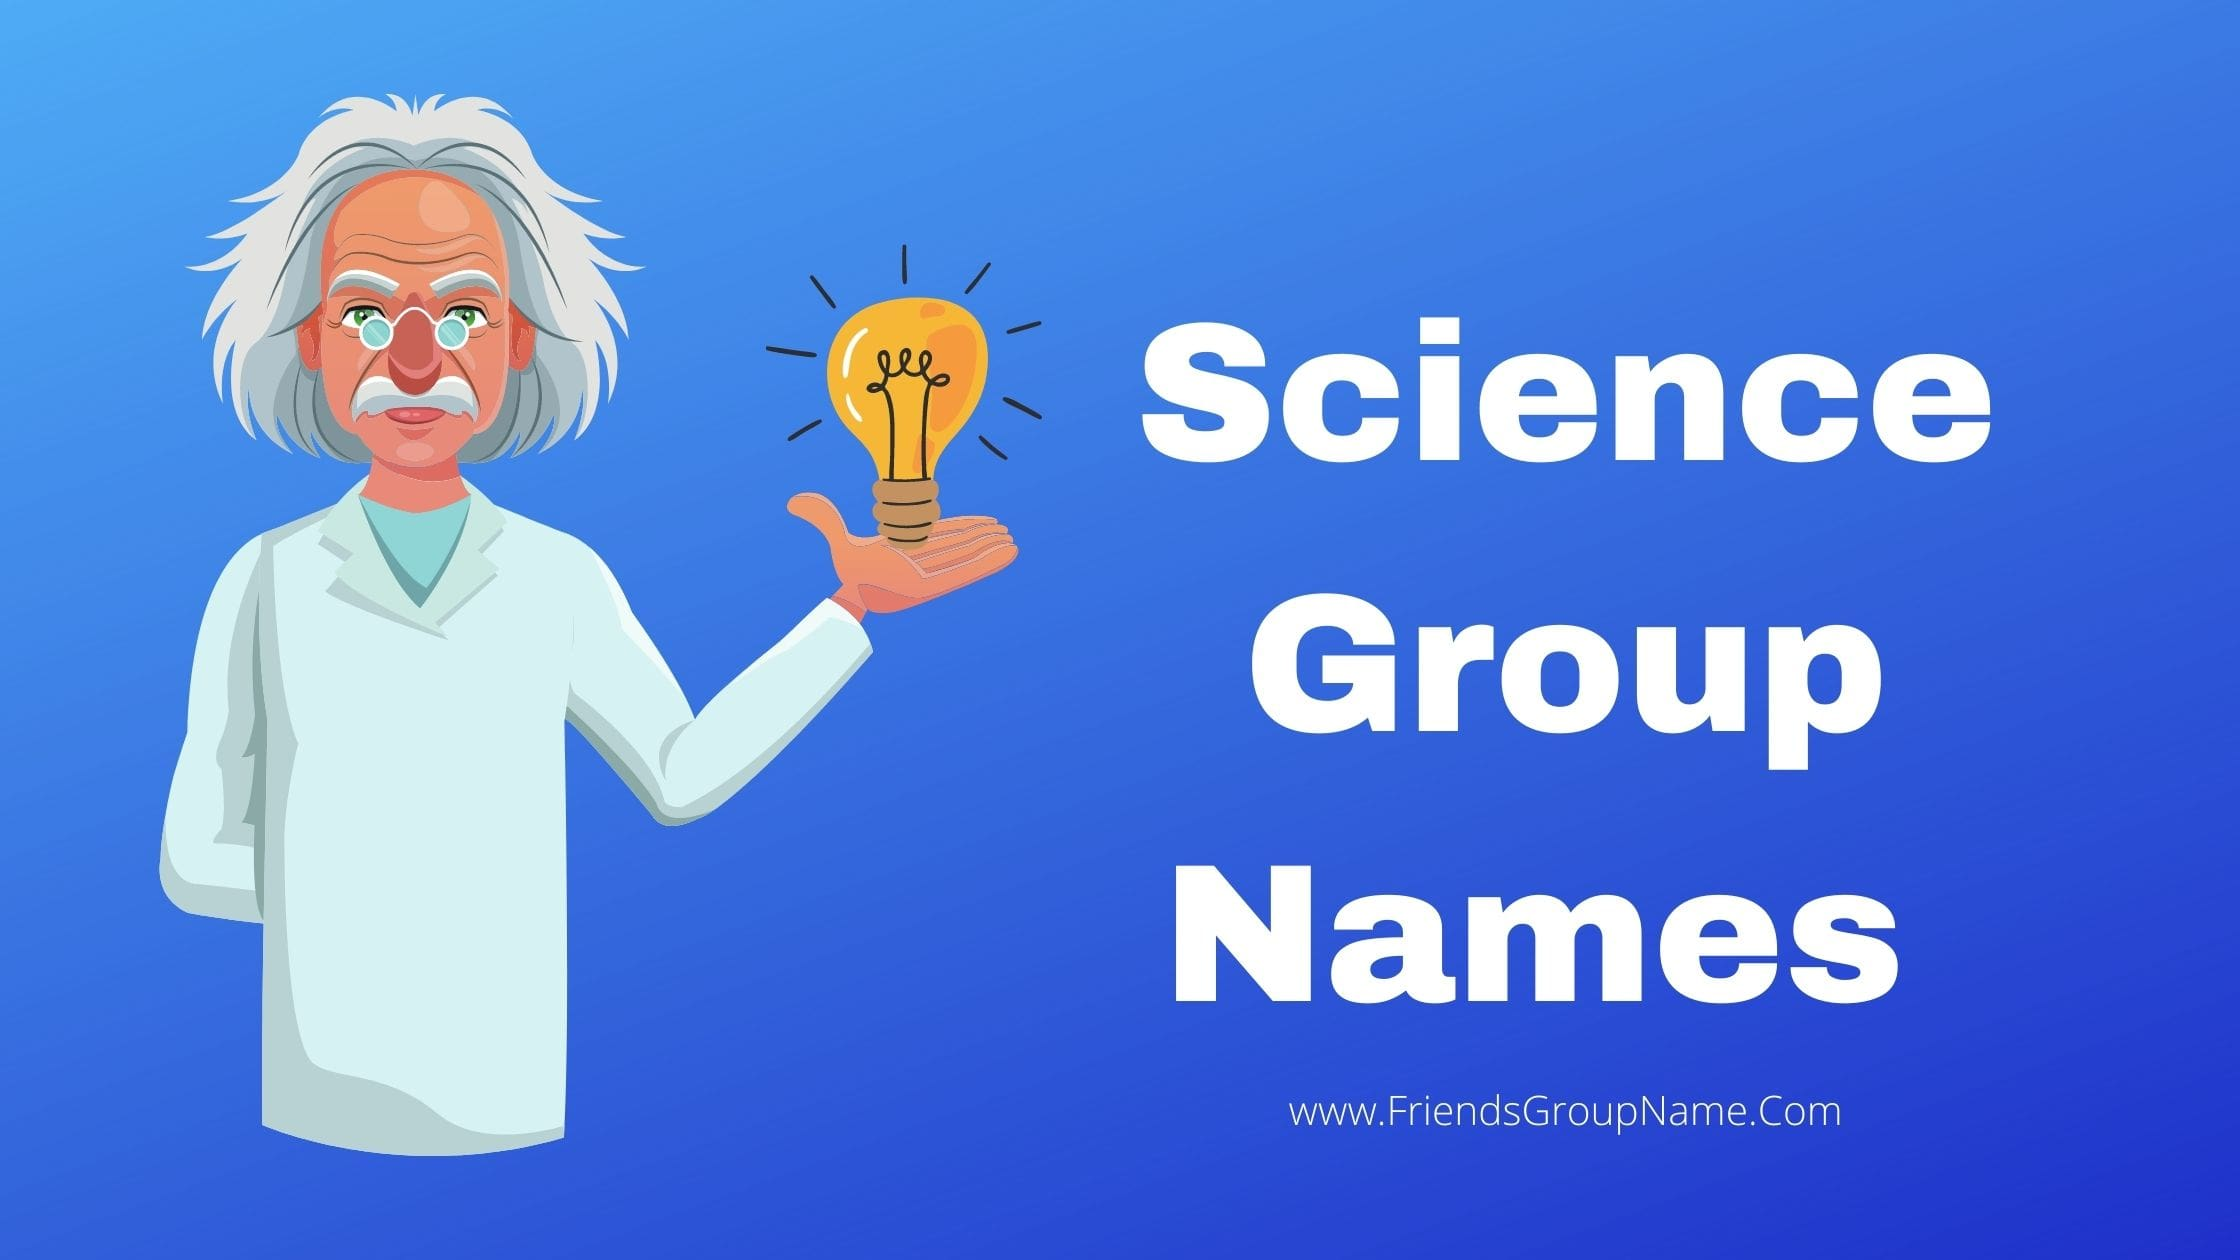 Science Group Names